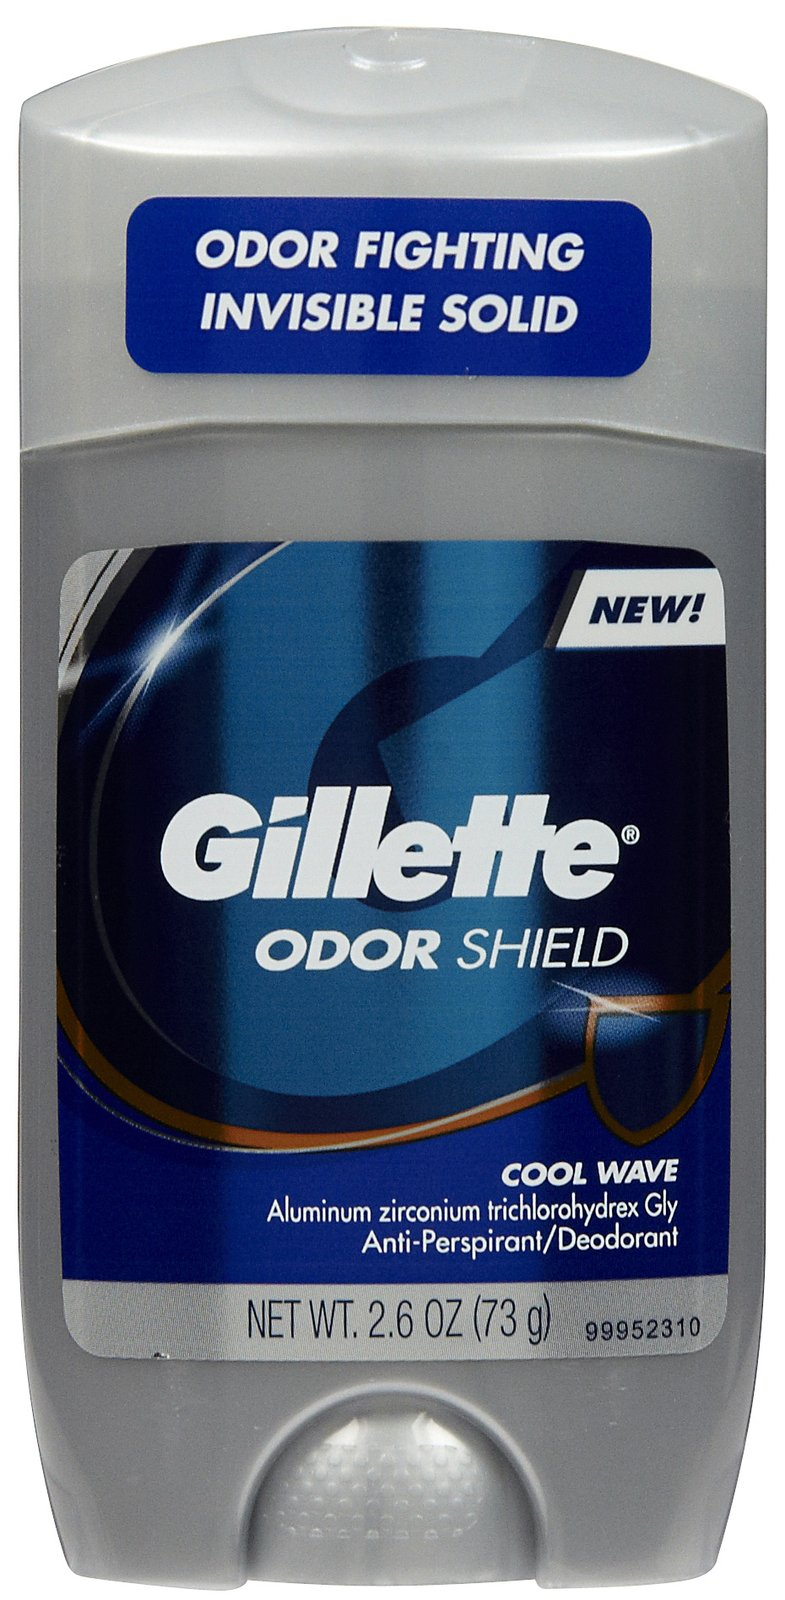 gillette coupon -  1  1 gillette deodorant coupon